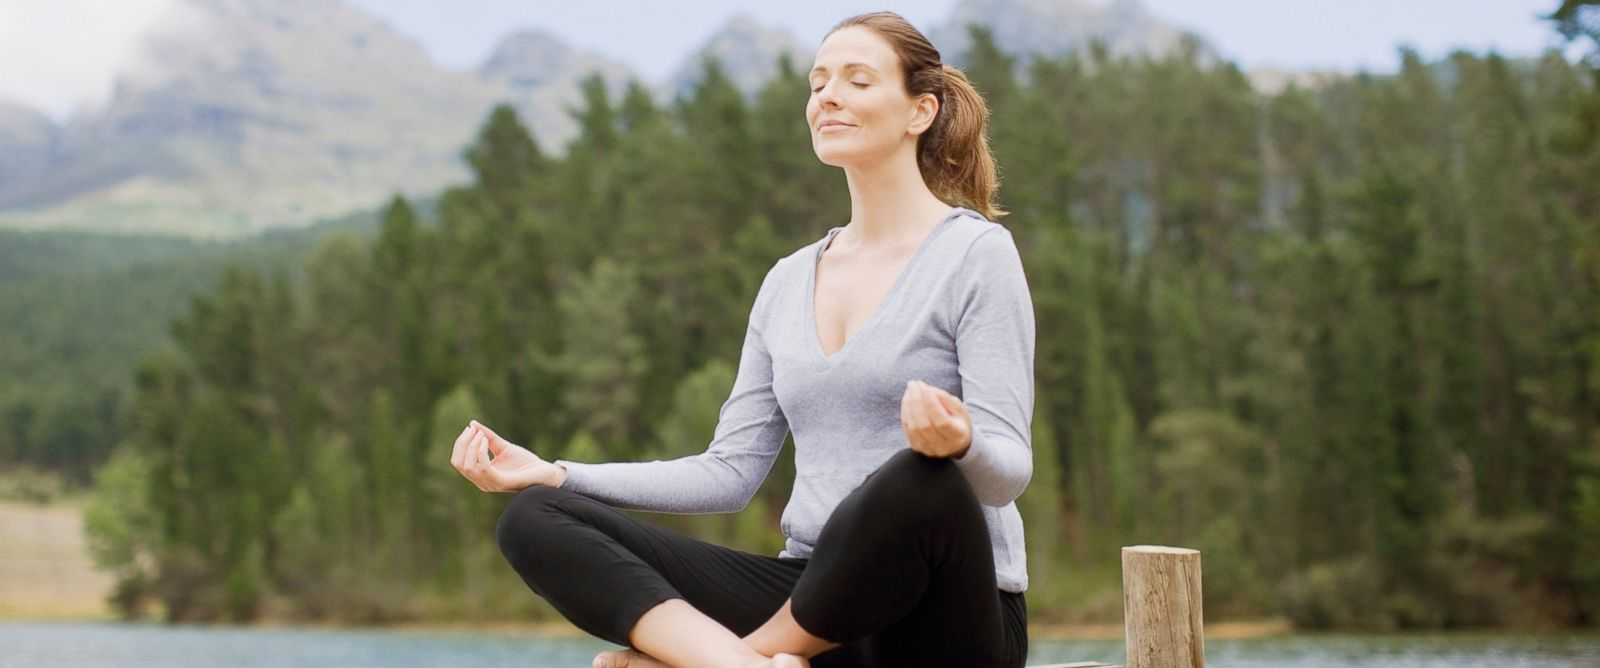 PHOTO: Meditation can reduce stress and lower blood pressure.